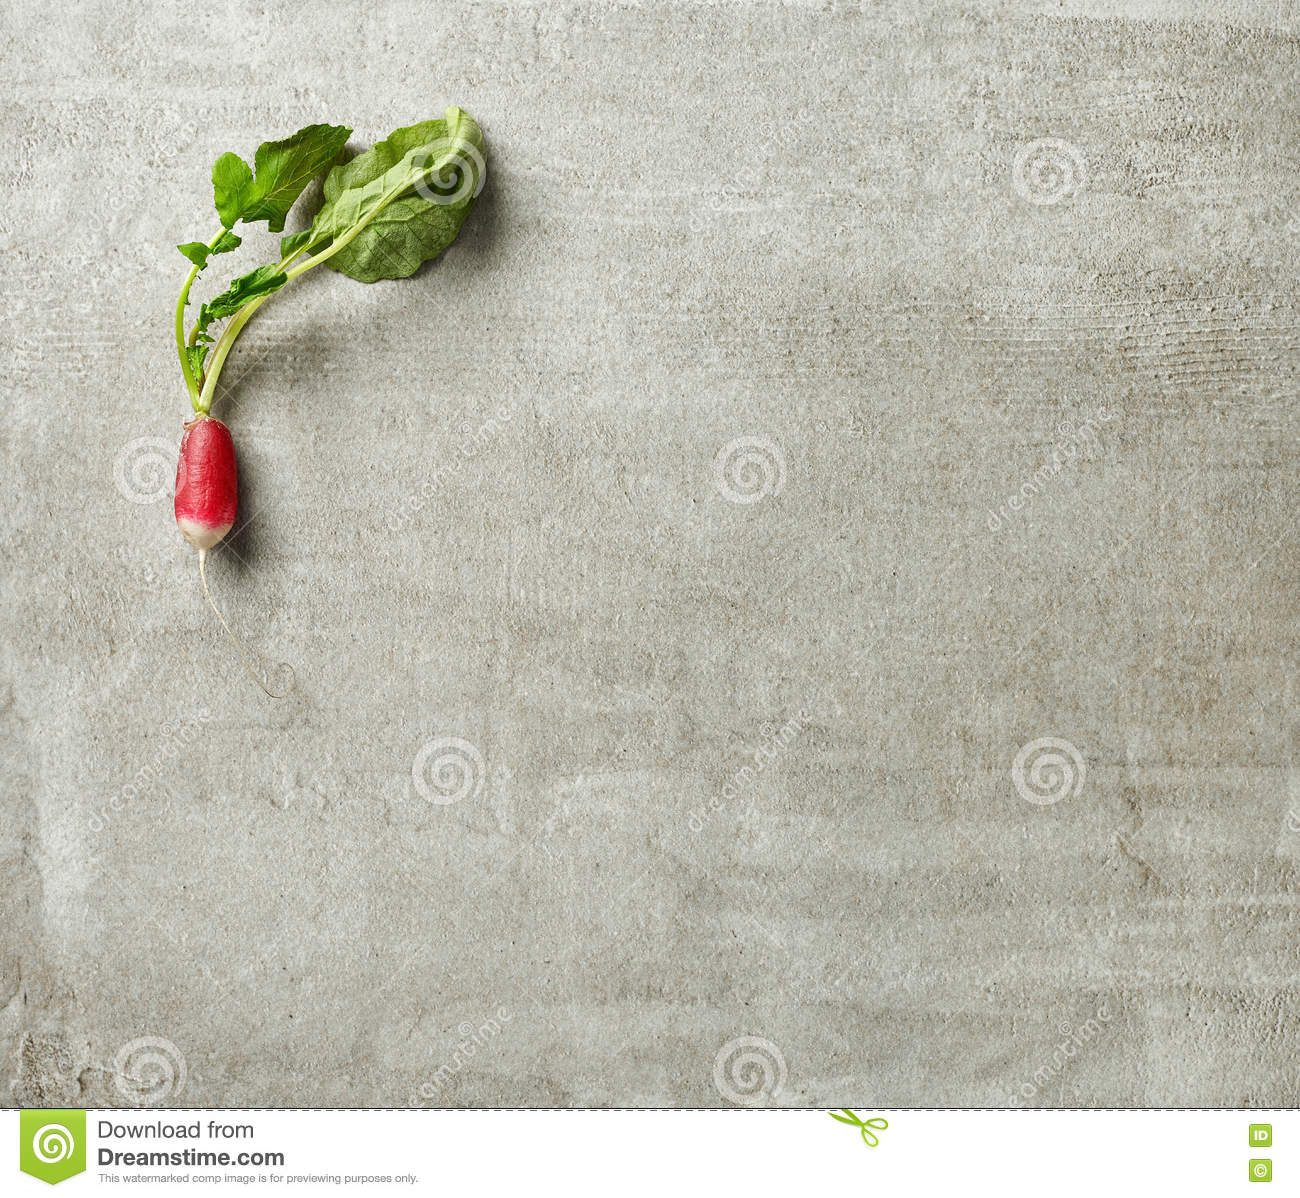 stock photo fresh raw radish gray kitchen table top view image gray kitchen table Fresh raw radish on gray kitchen table